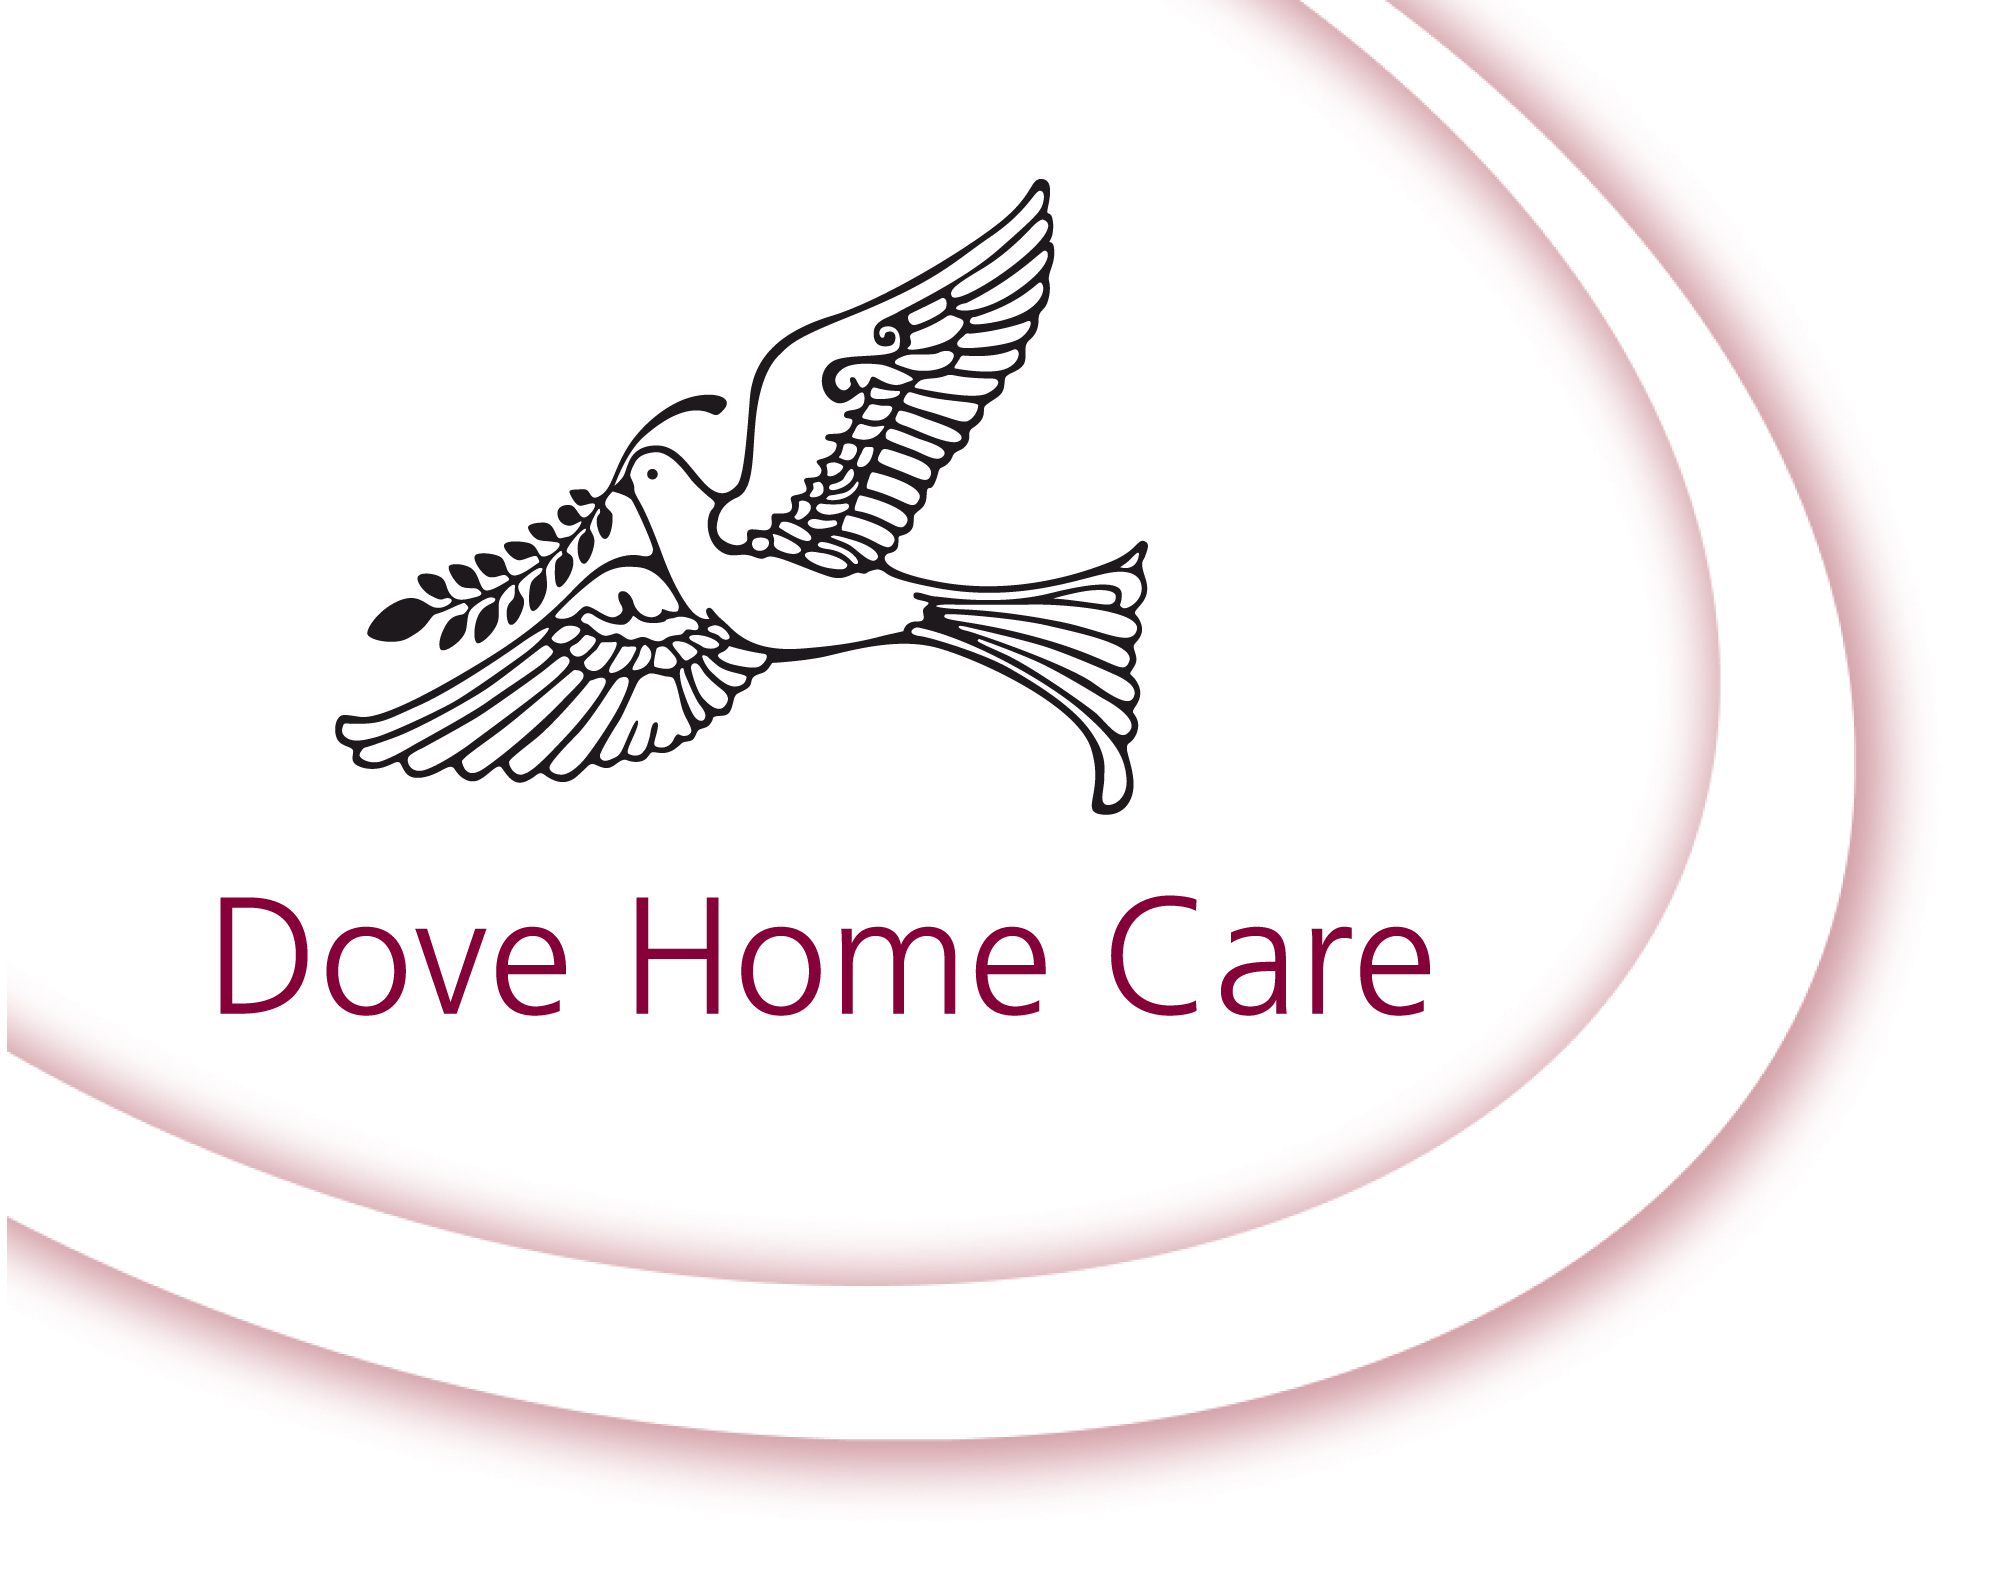 Dove Home Care